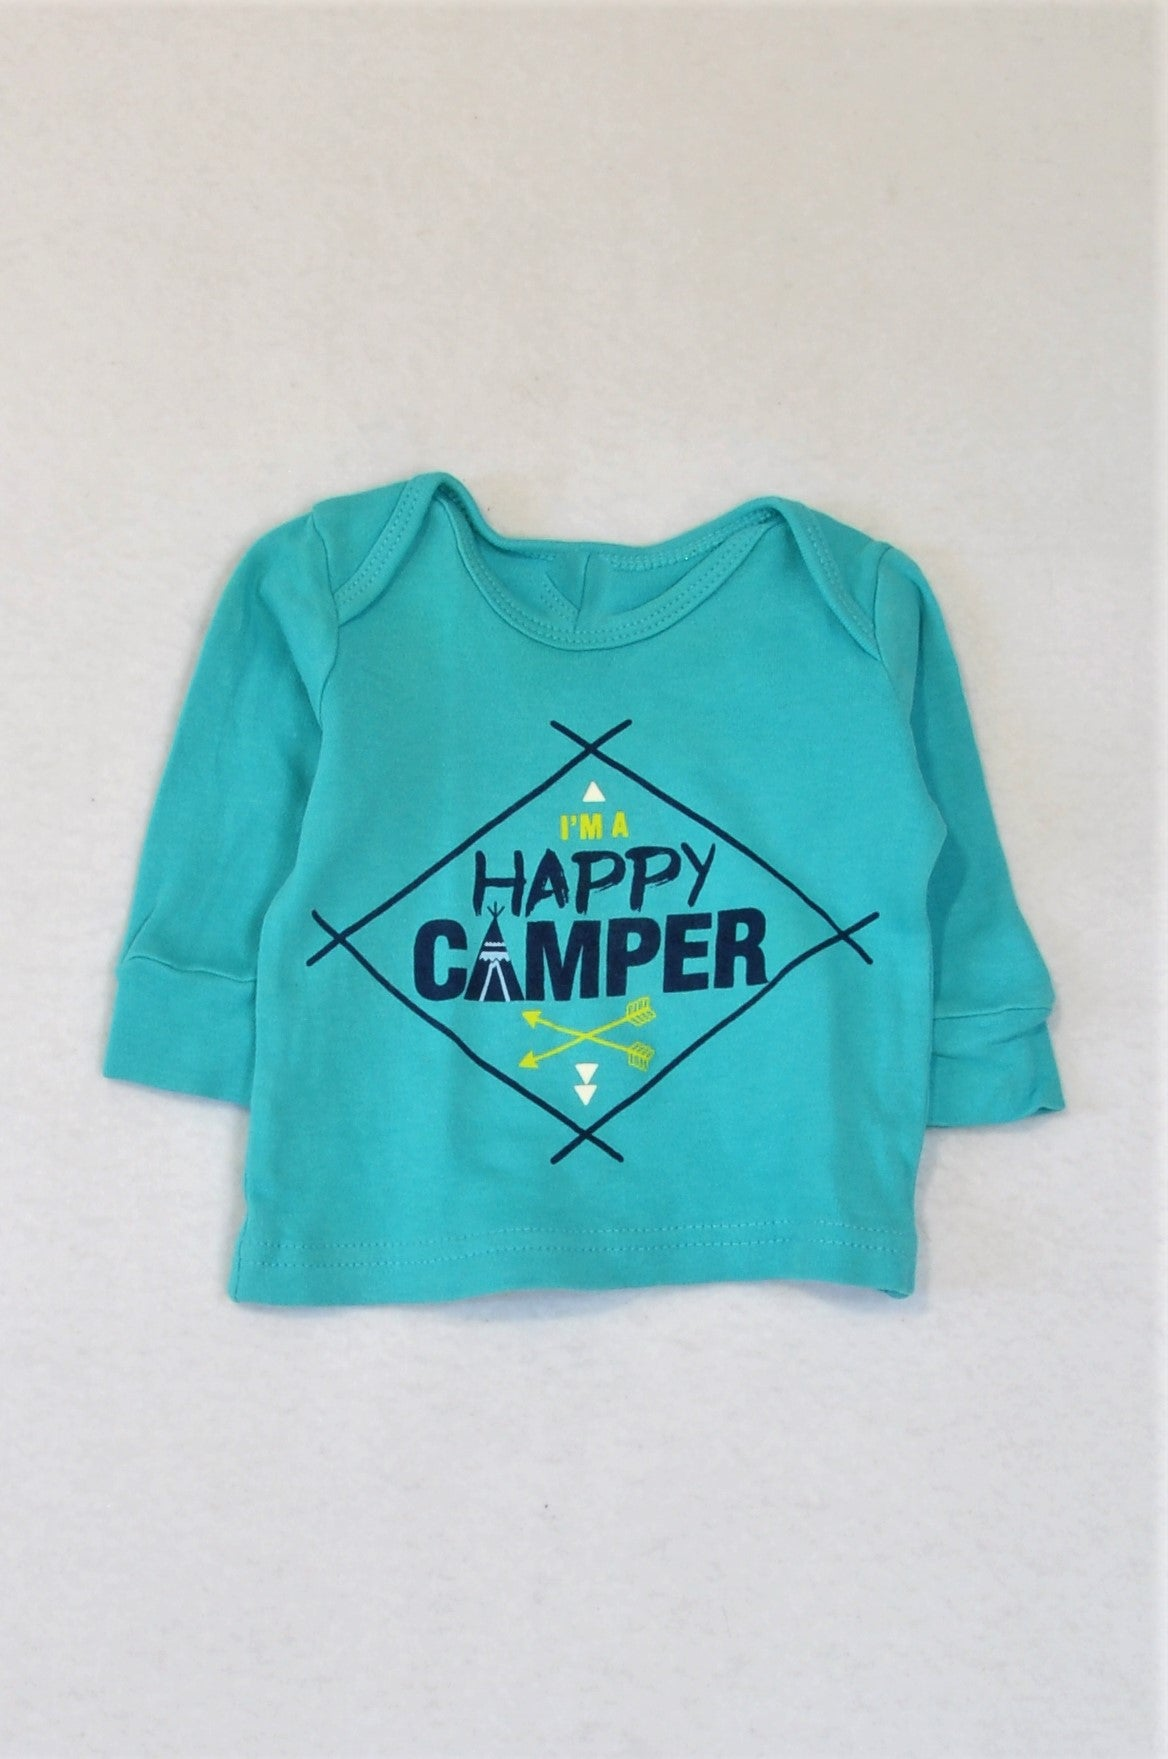 Woolworths Turquoise I'm A Happy Camper Long Sleeve T-shirt Boys 0-3 months